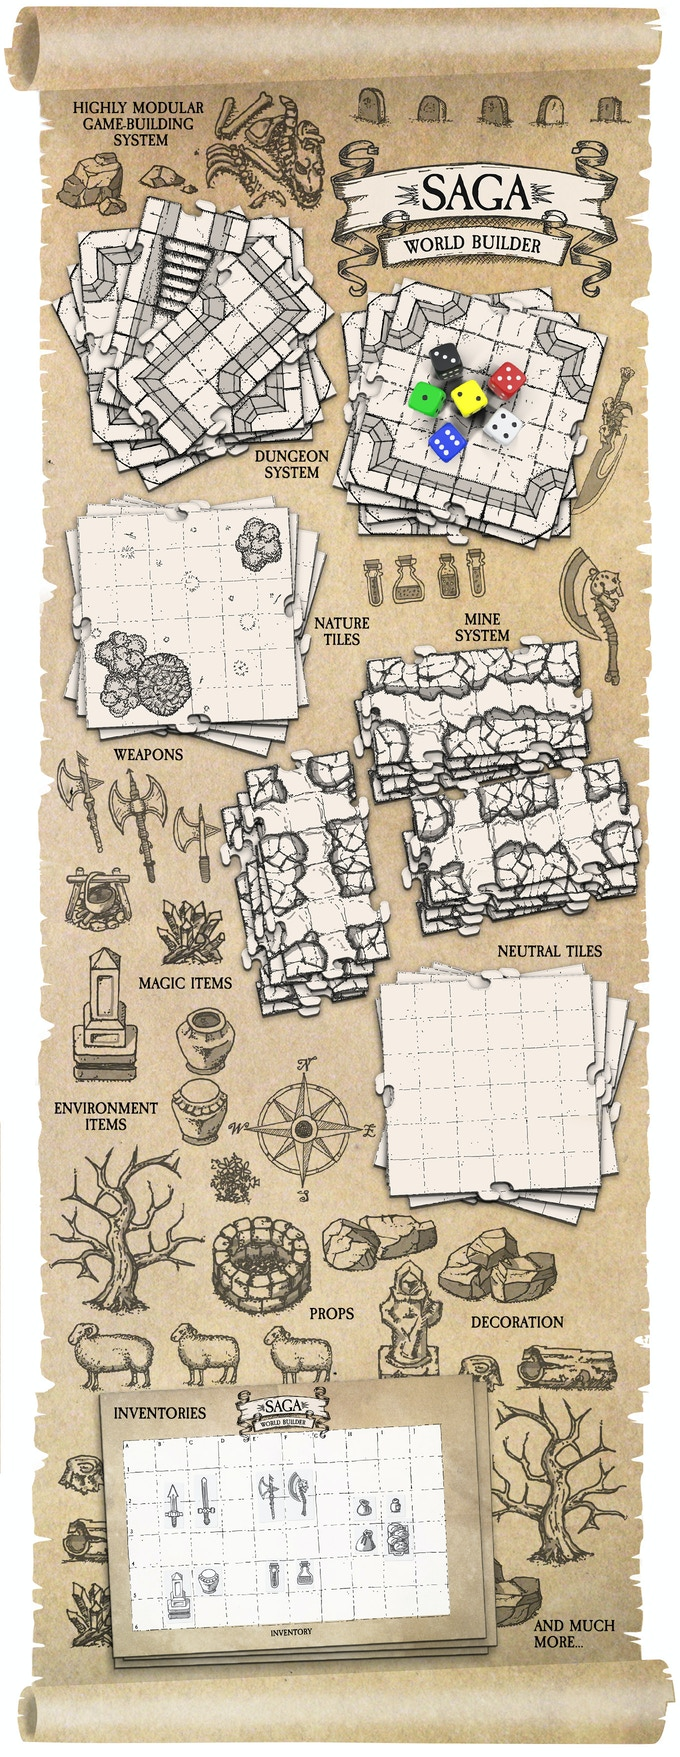 Saga world builder modular tiles for tabletop and dd games by saga saga world builder is a highly modular game building system for creating gaming maps and environments the system consists of a large number of double sided gumiabroncs Gallery